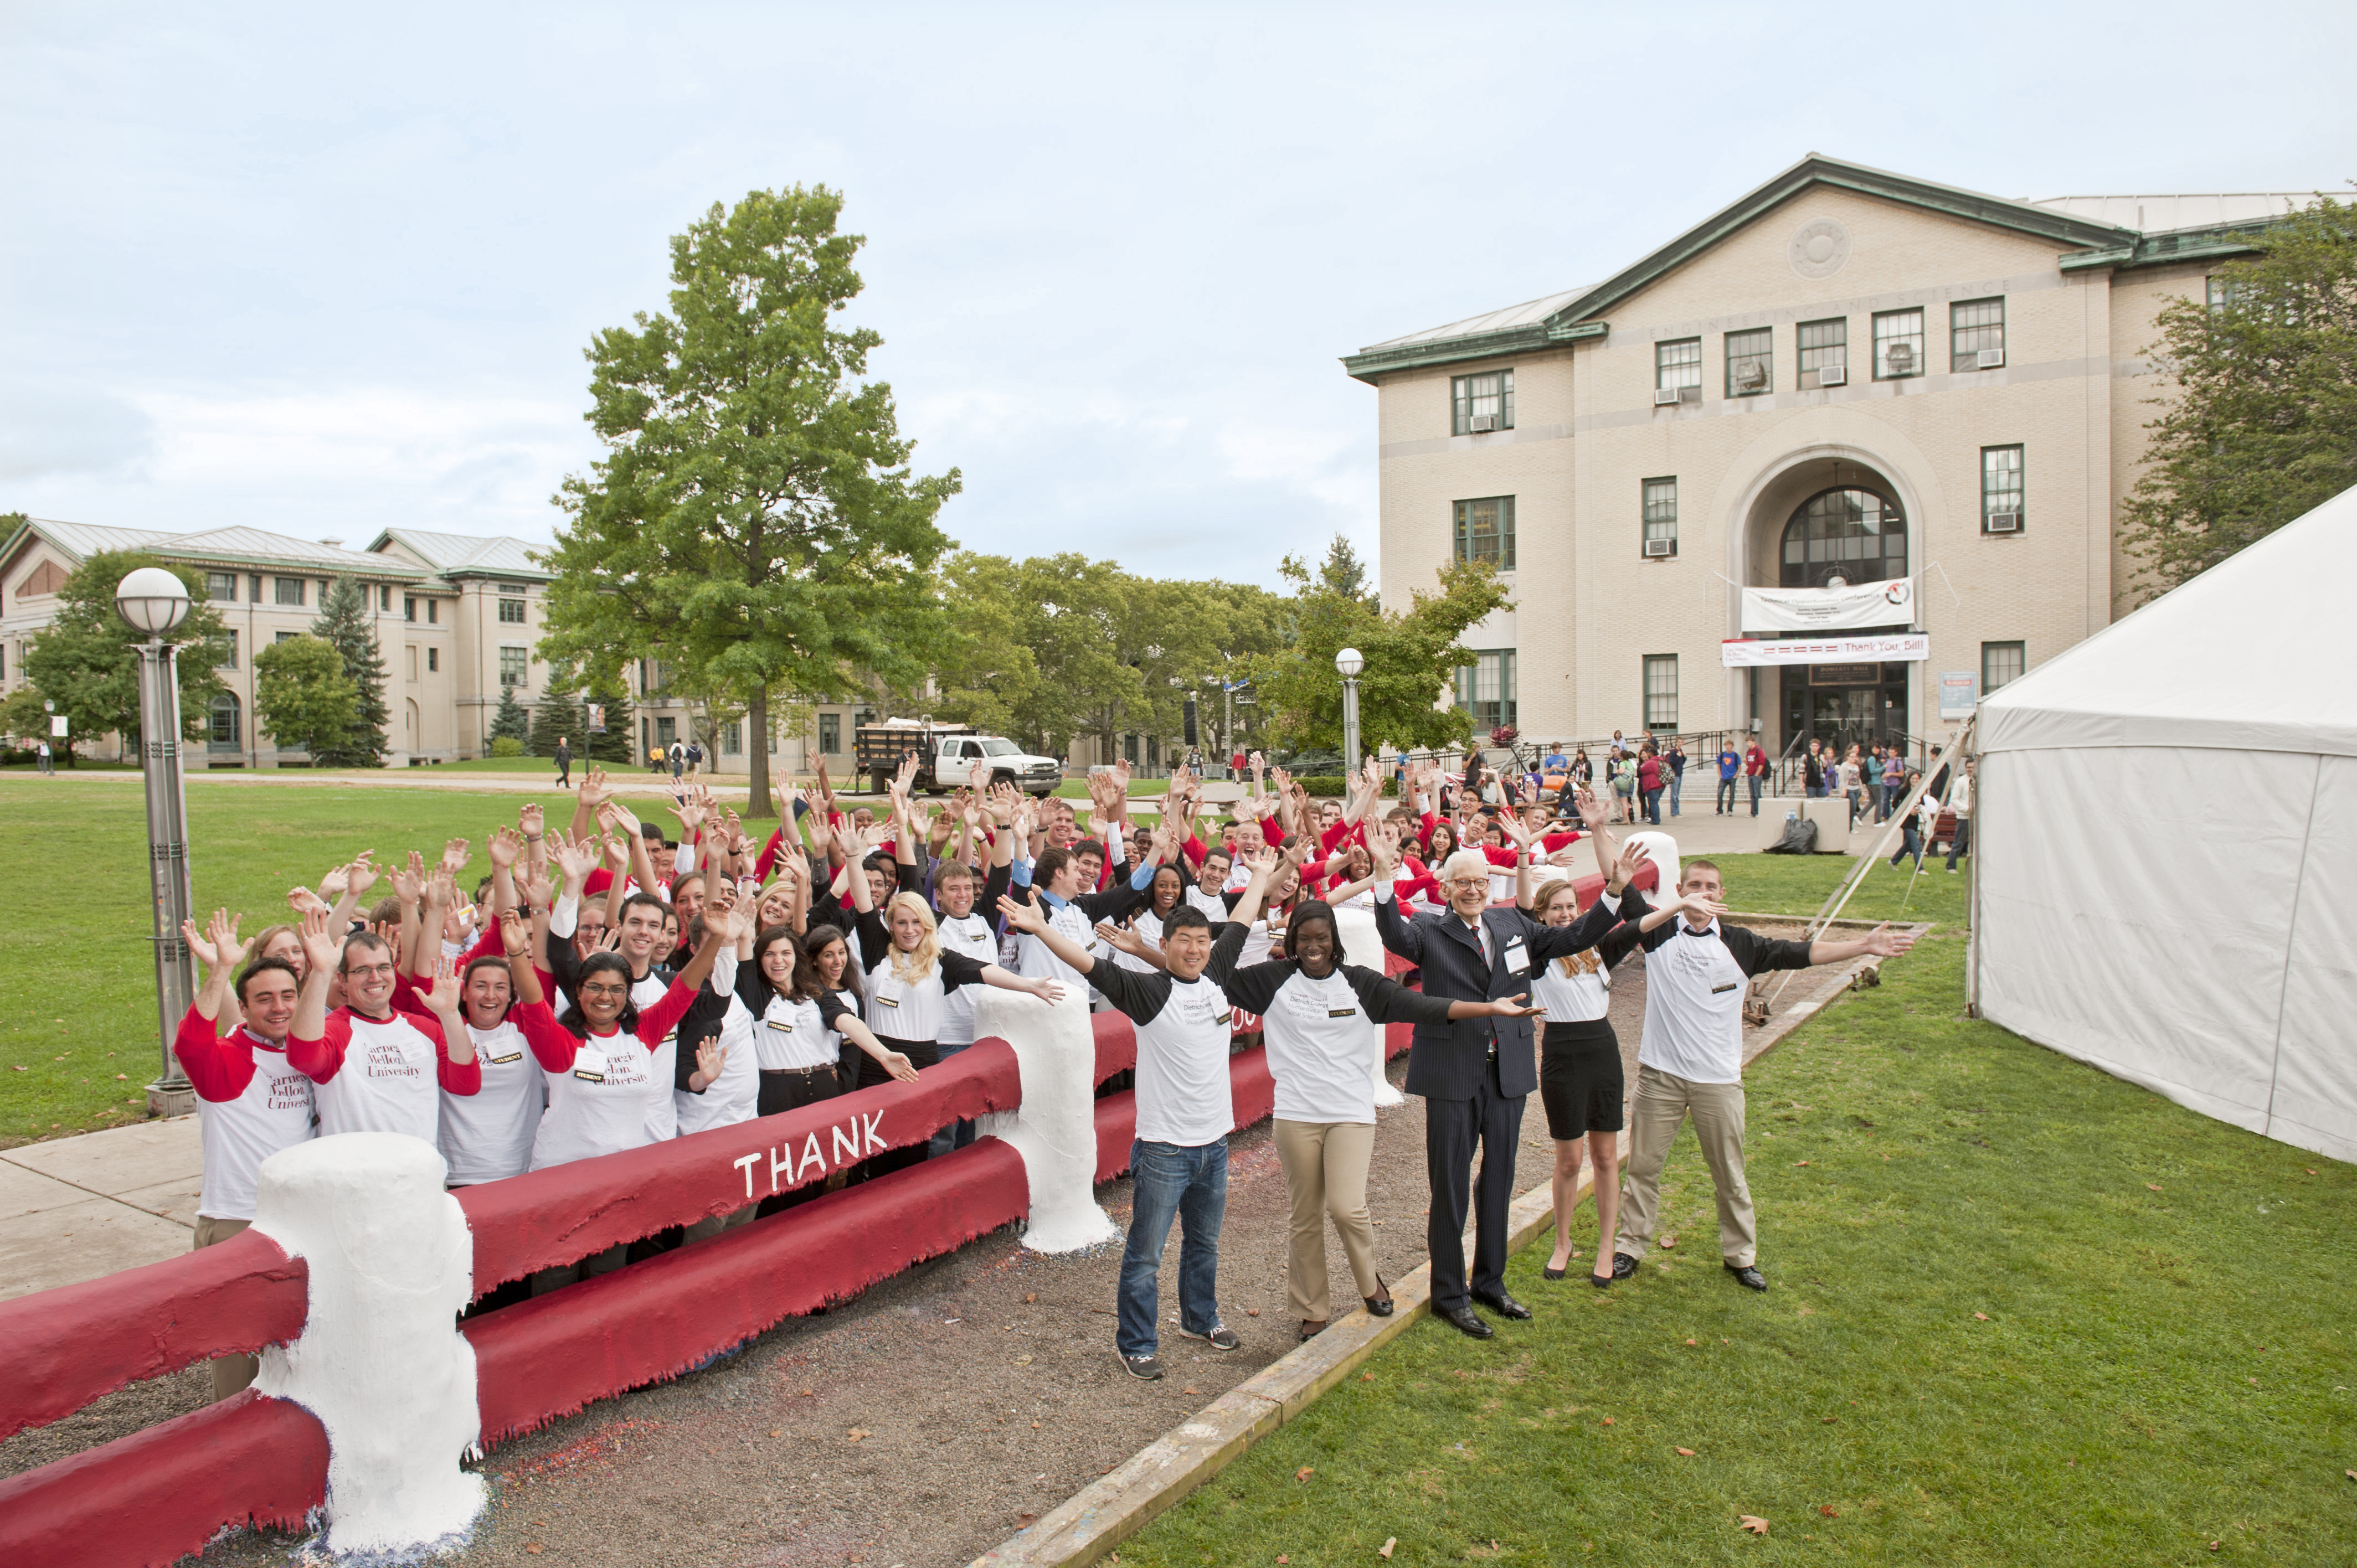 Bill Dietrich poses with student leaders by the Fence after the ceremony announcing his donation. (credit: Courtesy of Carnegie Mellon University)